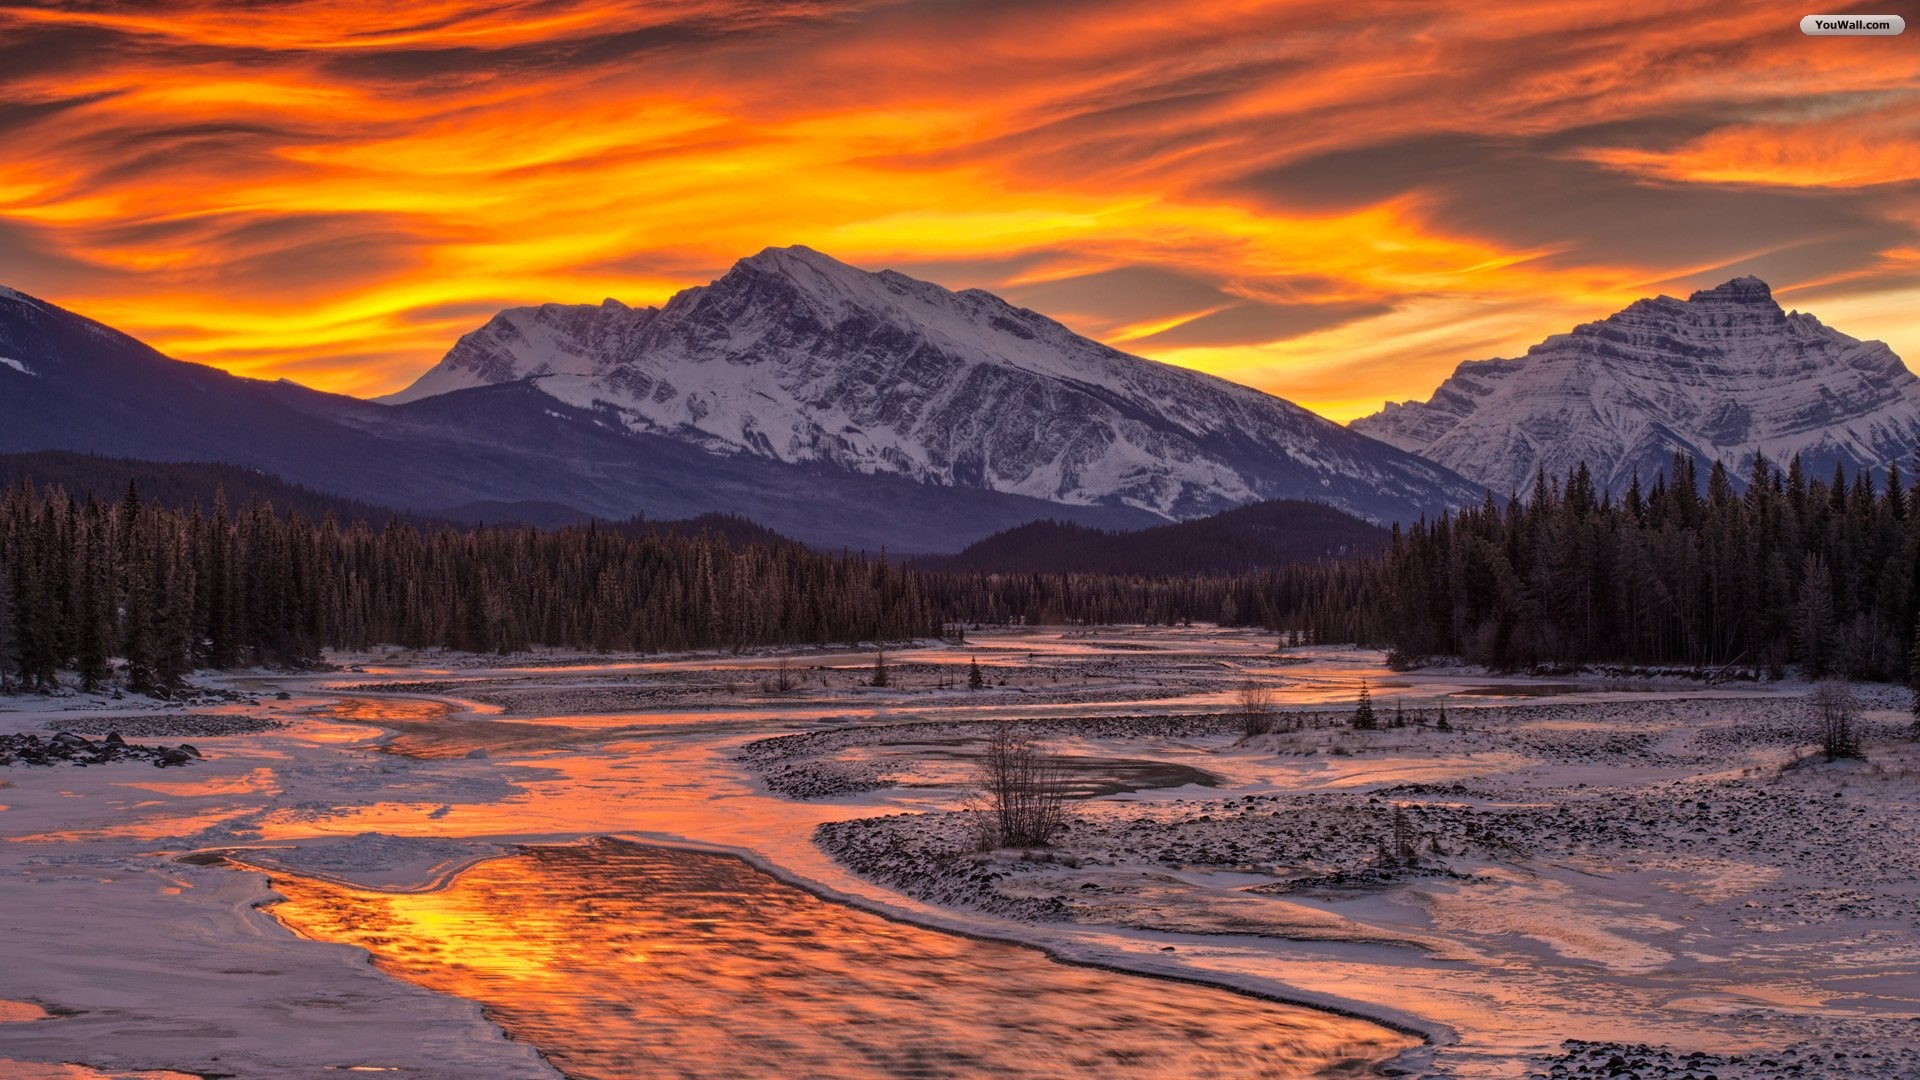 Denver Mountains Sunset. Wallpaper of sunset over snowy mountains